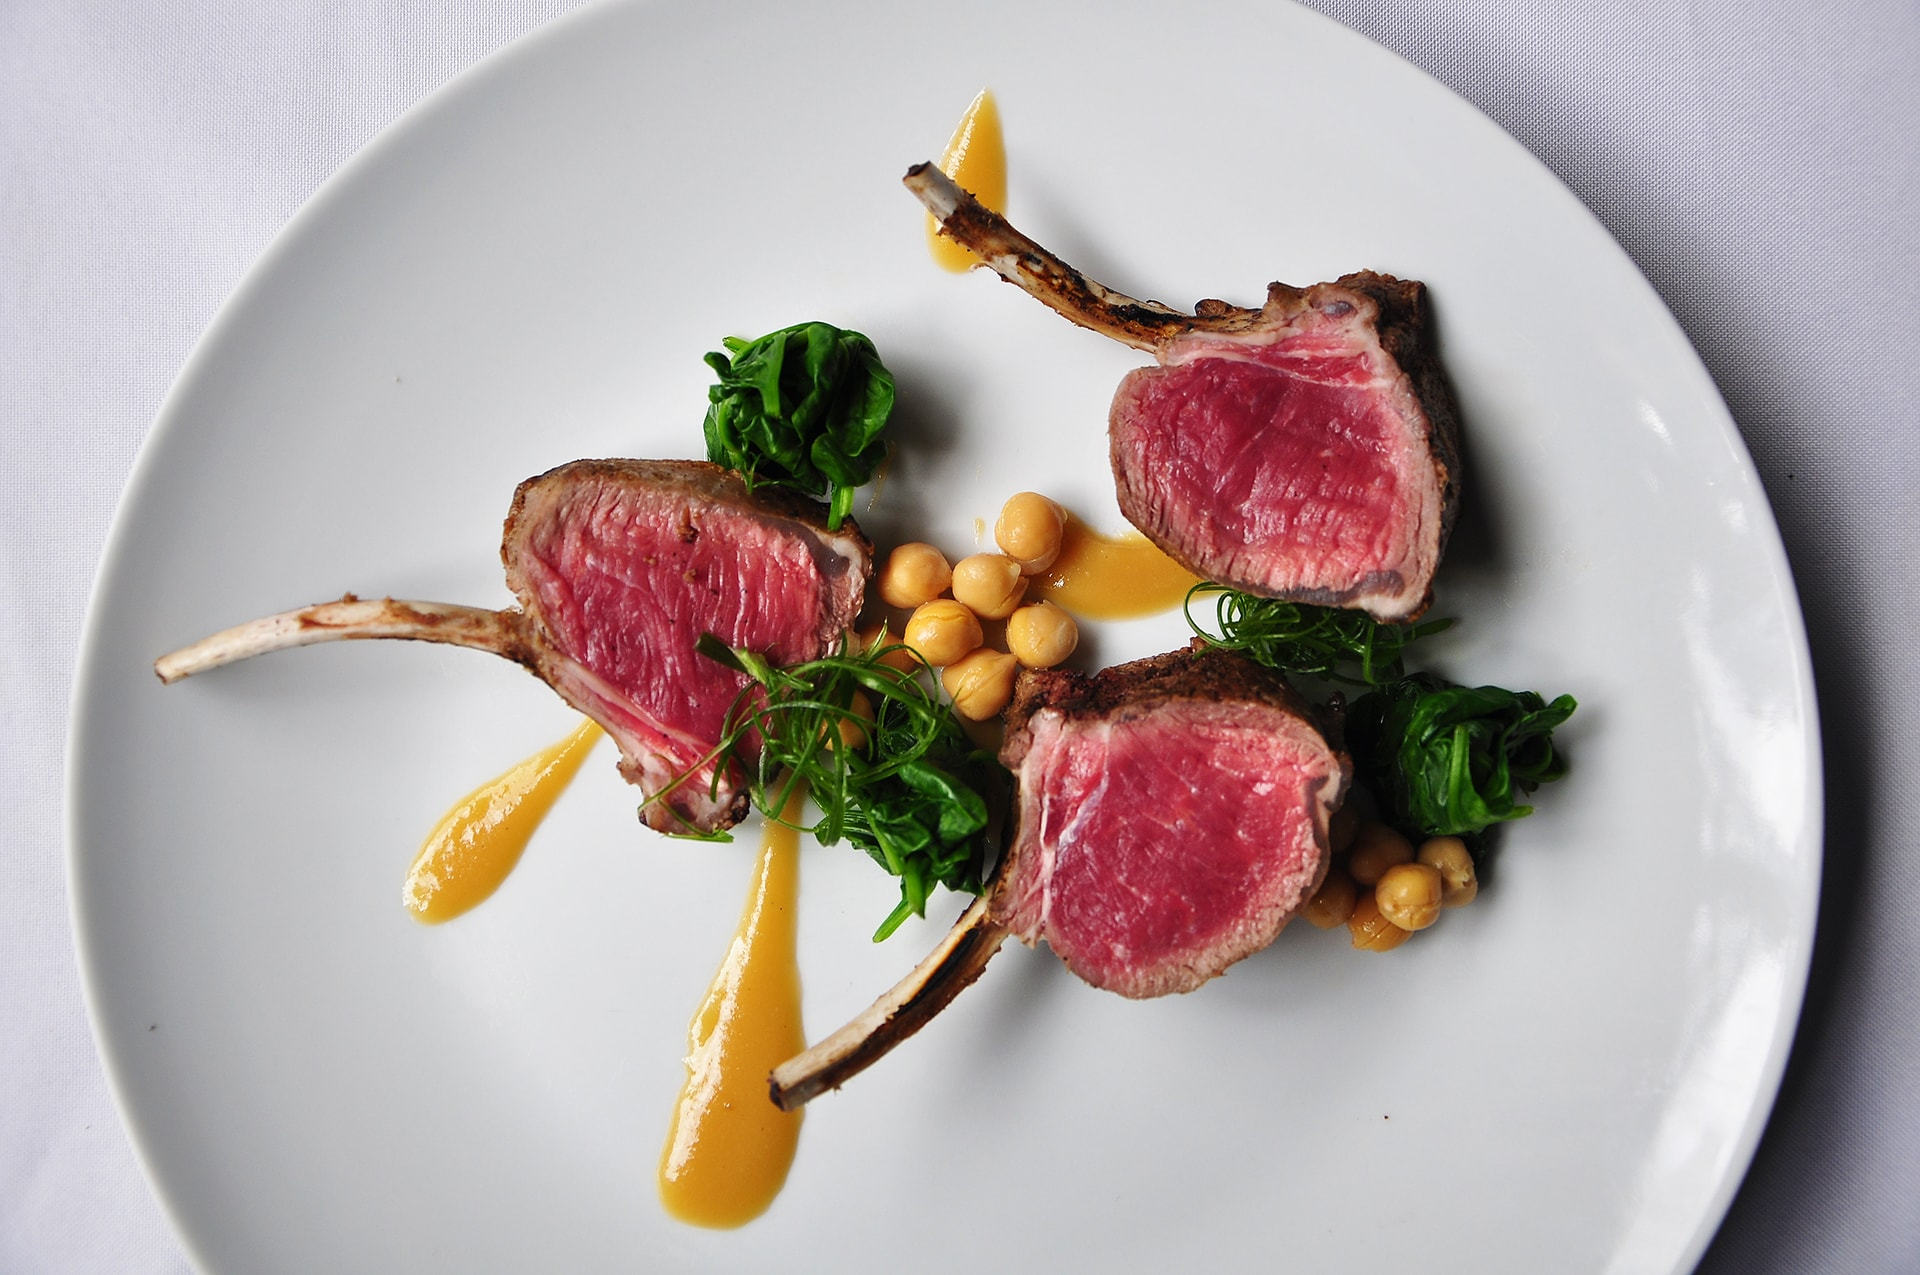 Grilled-Rack-of-Lamb-with-Spinach-Chickpeas-Garlic-Miso-min Indigo at The Blue Mansion